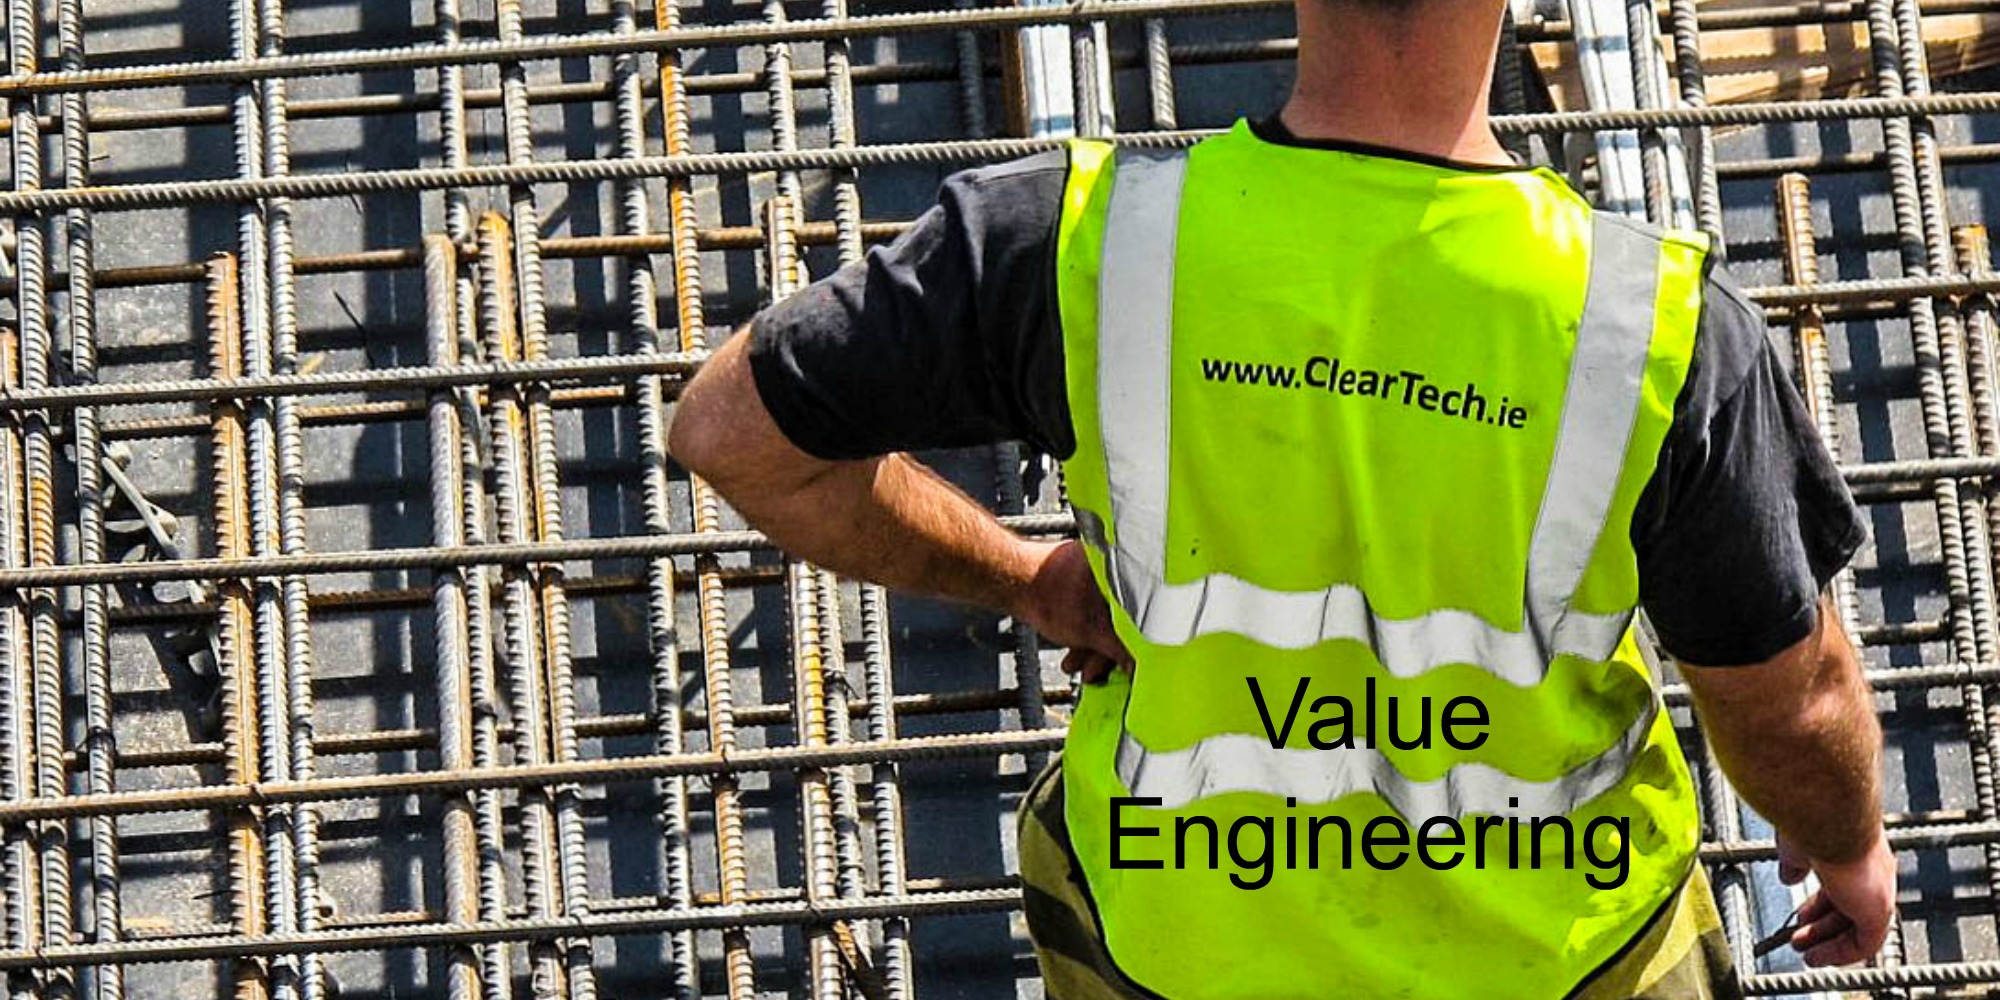 Home page for Value engineered